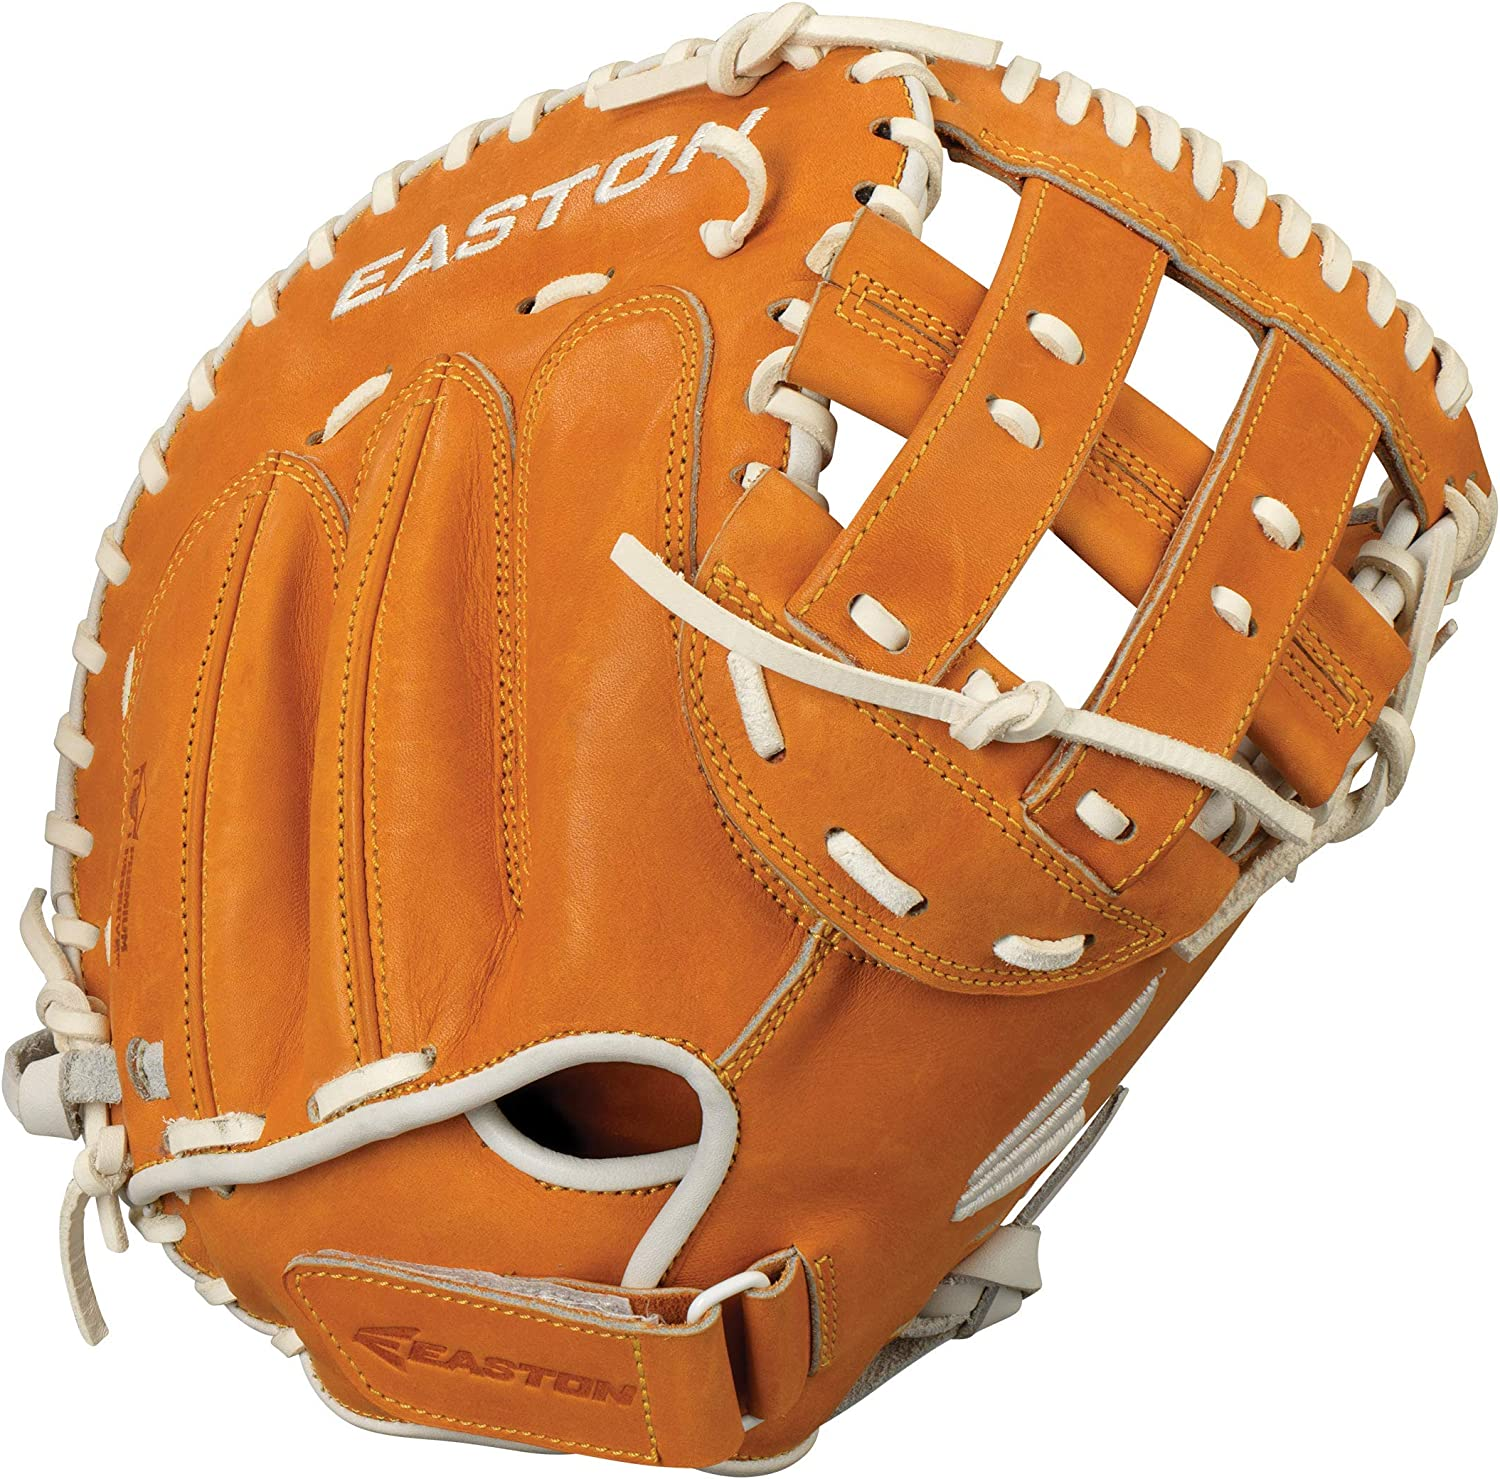 Easton Professional Fastpitch Collection Baseball Glove